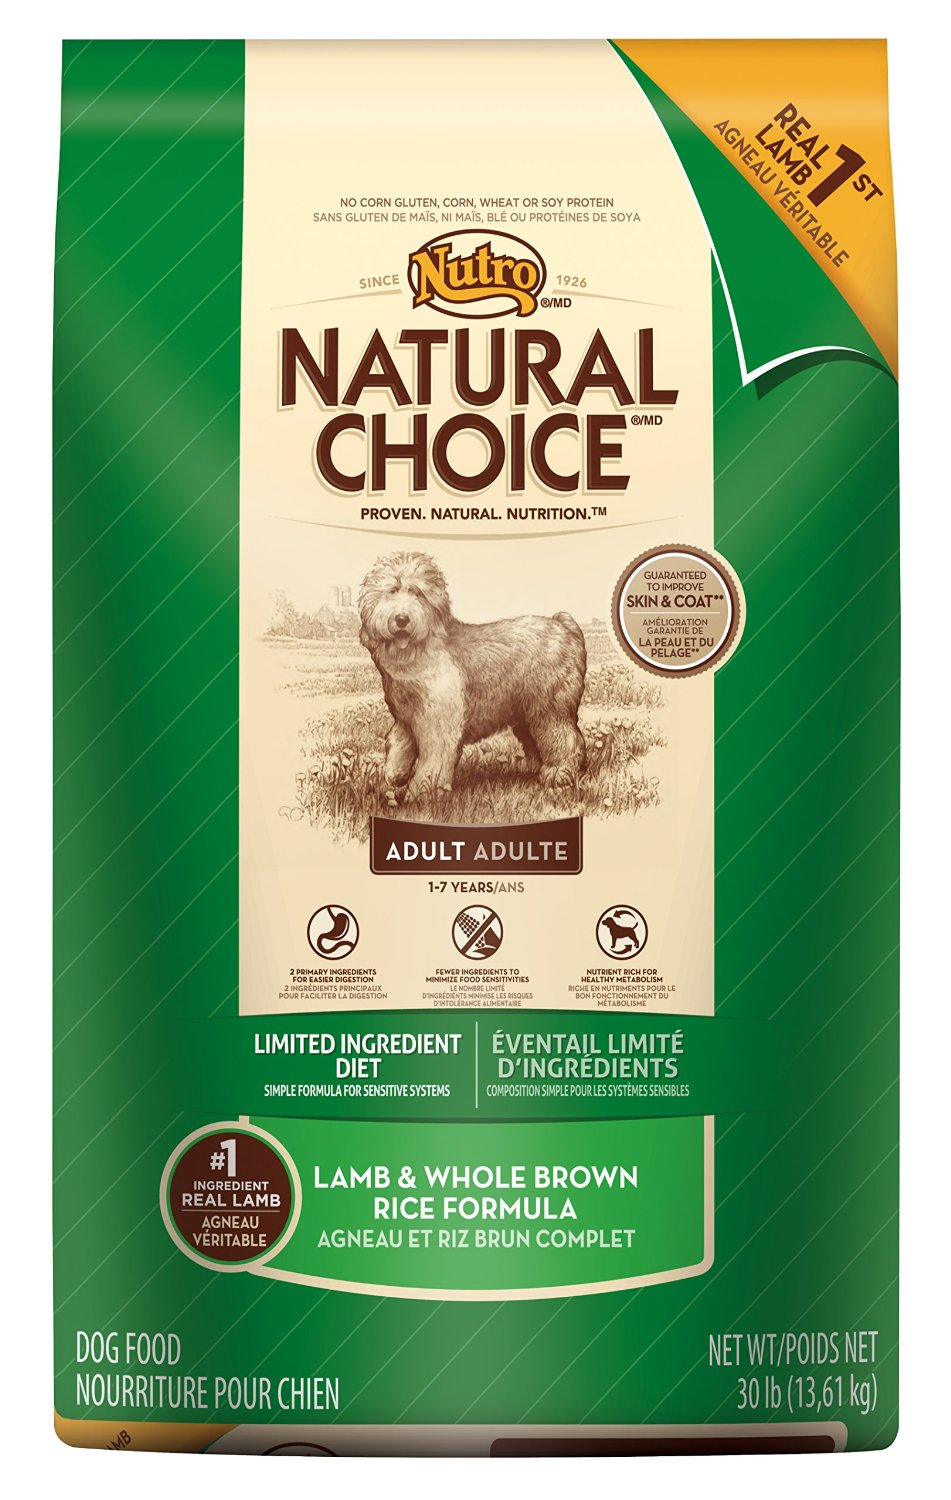 Natural Choice Limited Ingredient Diet Dog Food